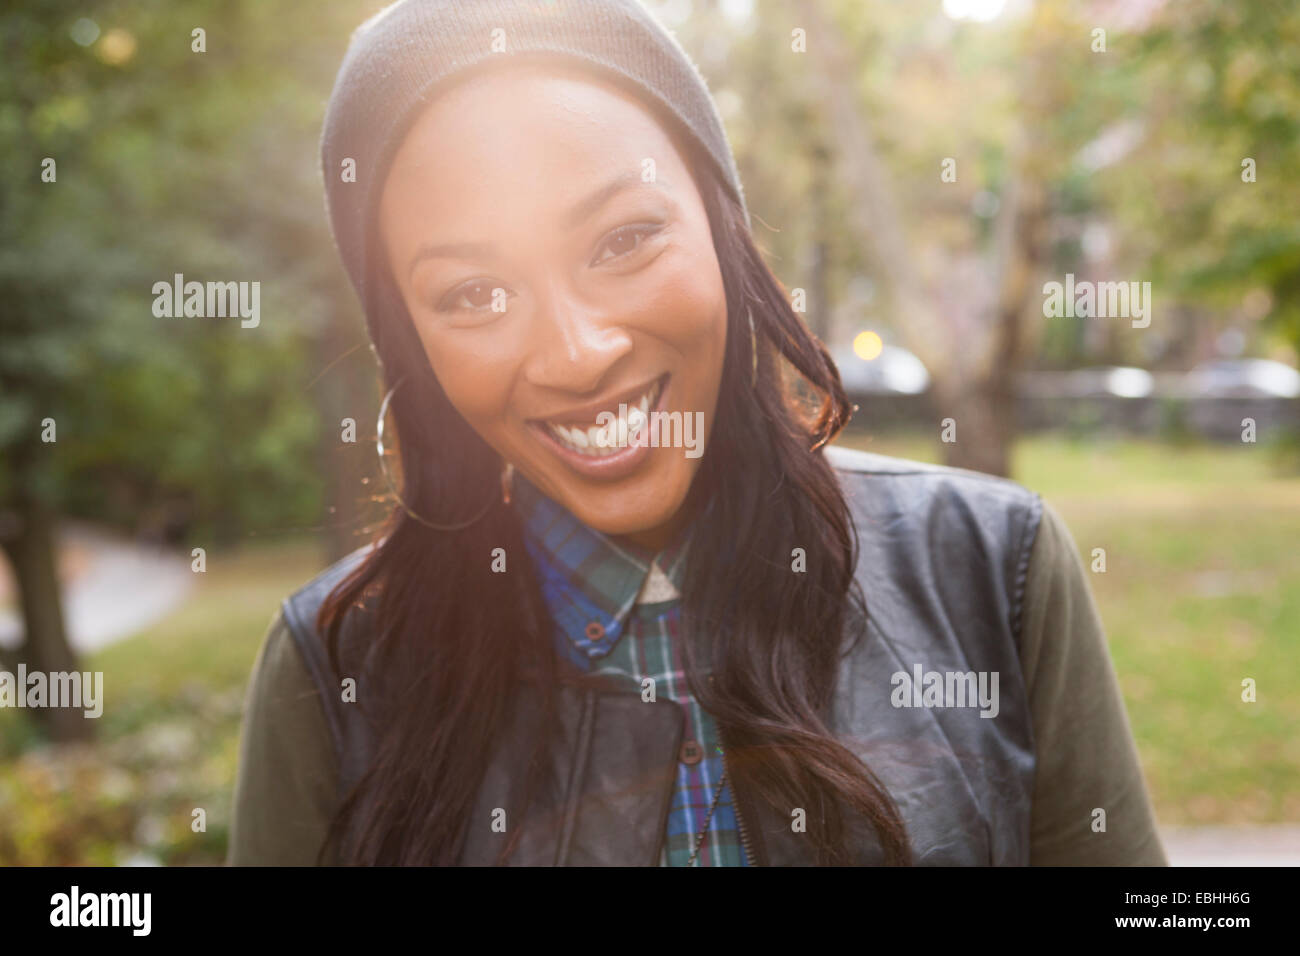 Young woman with wide smile in park - Stock Image